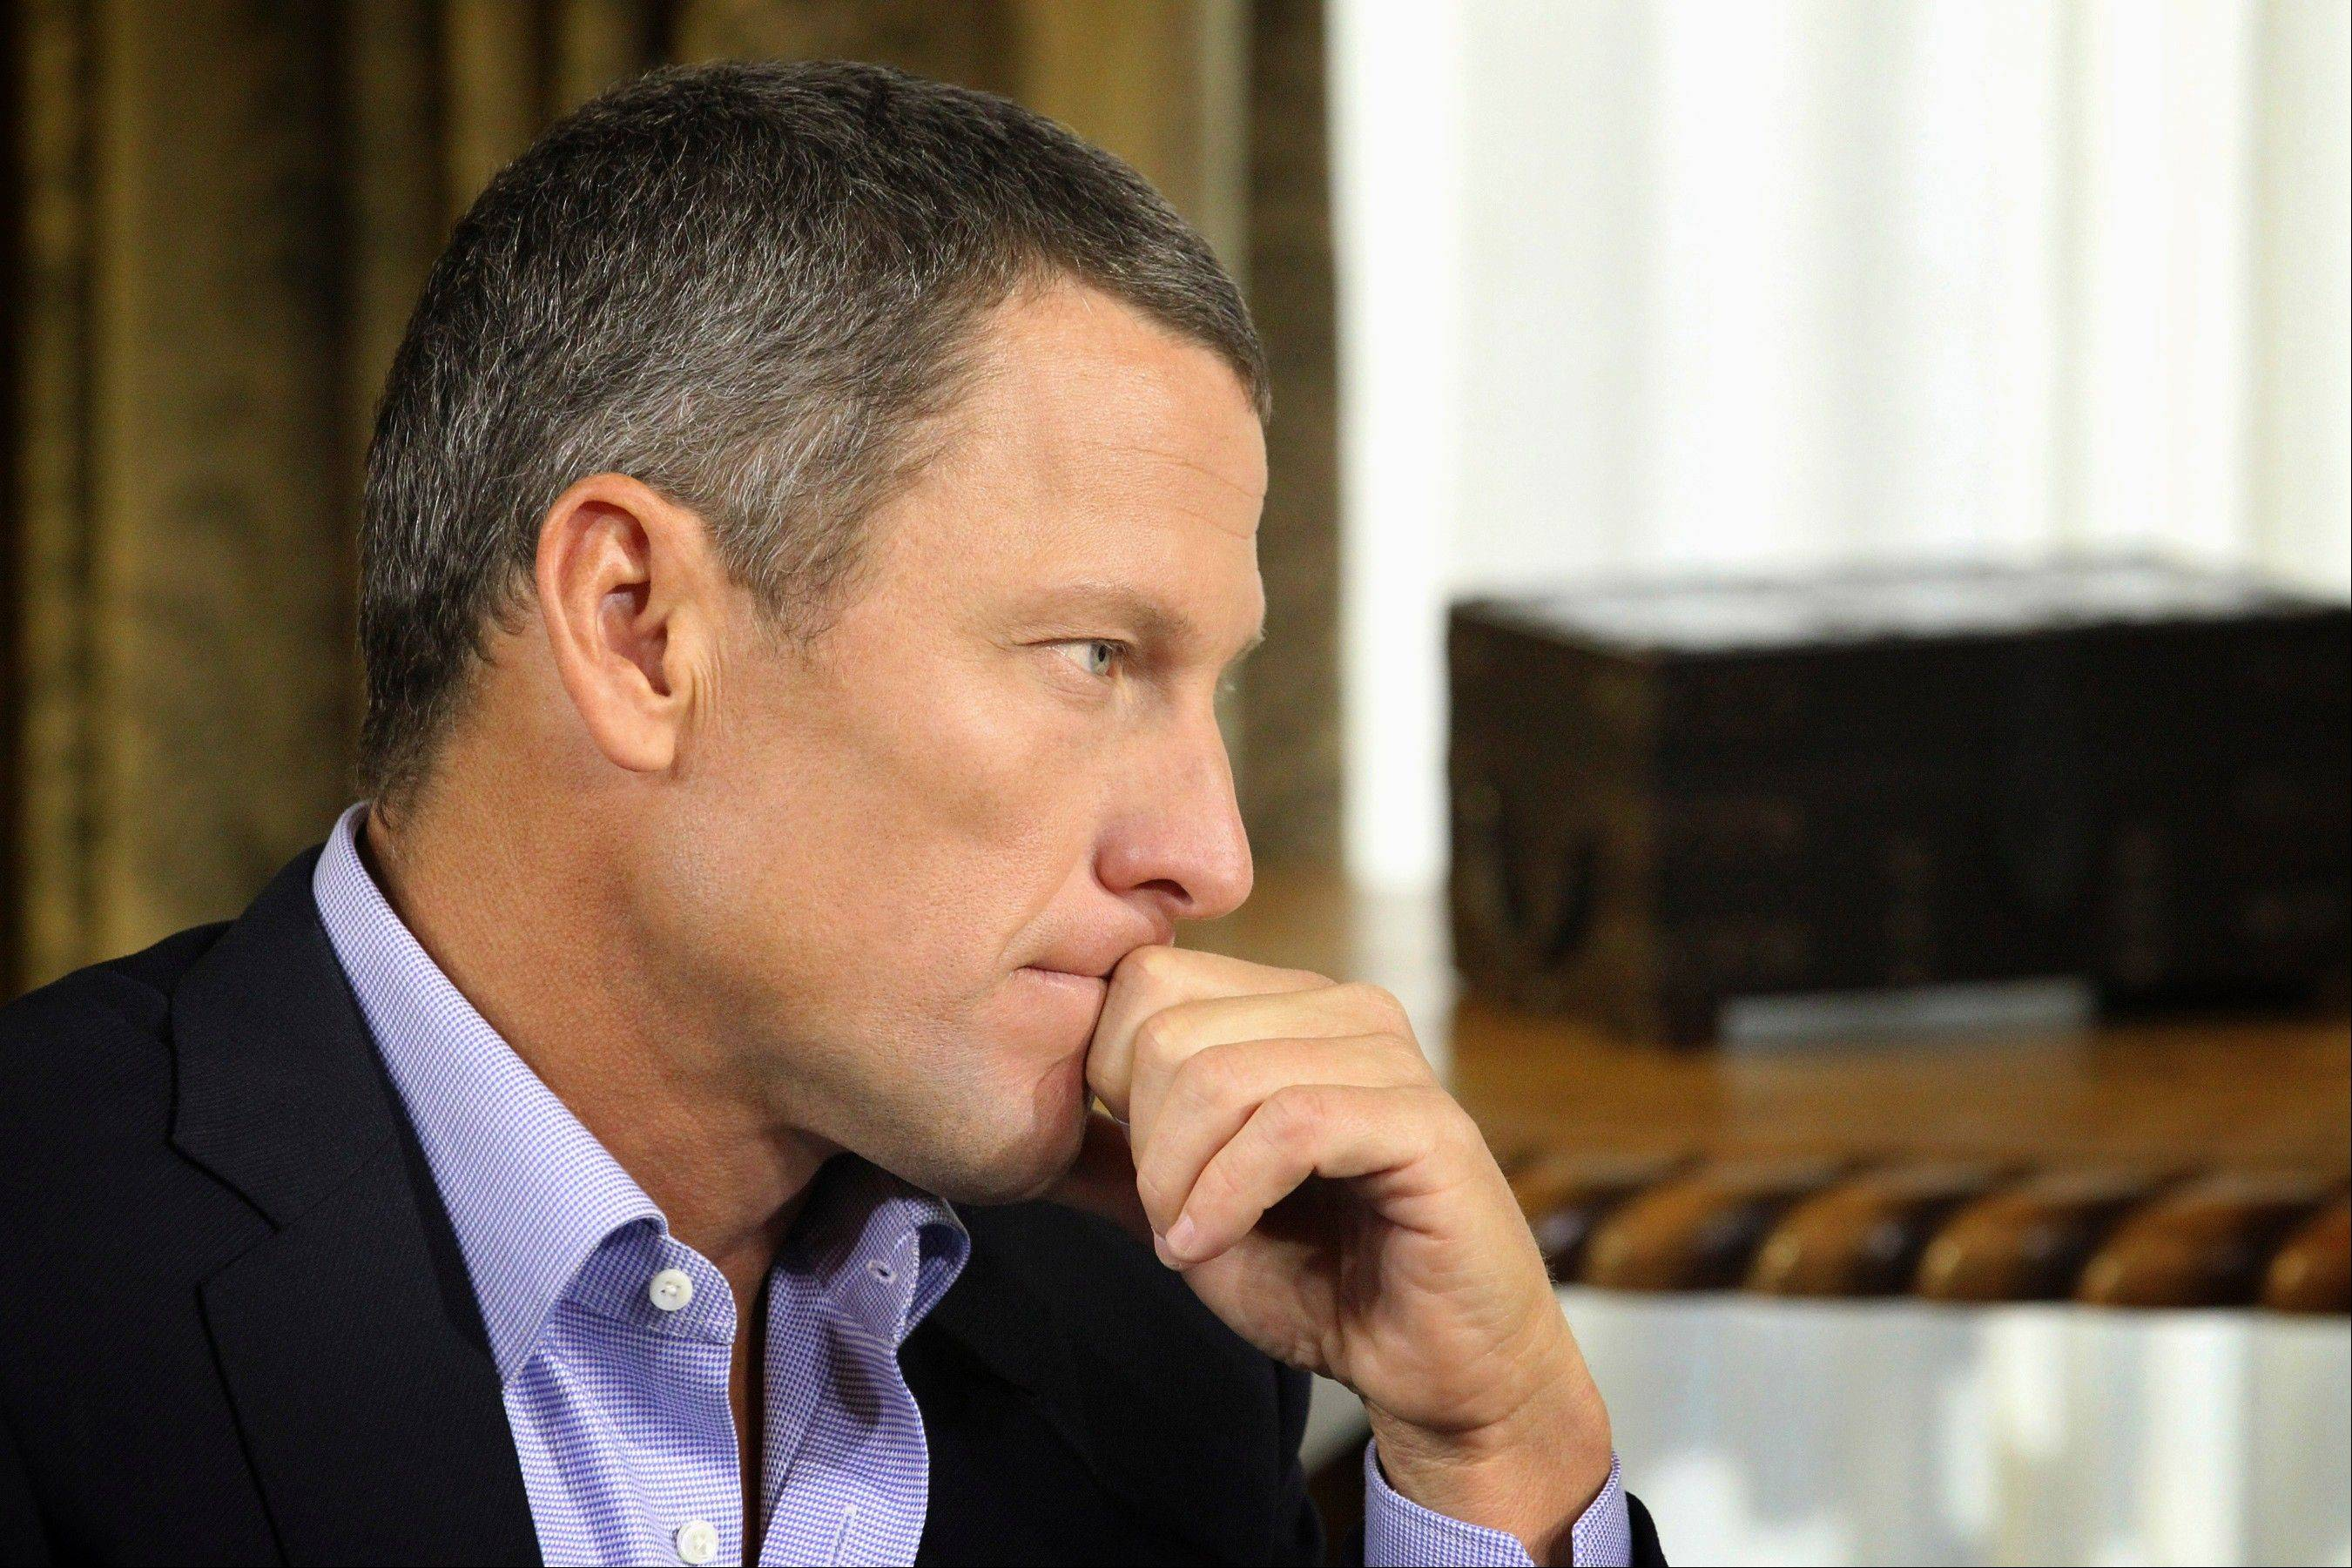 "Lance Armstrong listens as he is interviewed by talk show host Oprah Winfrey during taping for the show ""Oprah and Lance Armstrong: The Worldwide Exclusive"" in Austin, Texas. Armstrong confessed to using performance-enhancing drugs to win the Tour de France cycling during the interview that aired Thursday, reversing more than a decade of denial."